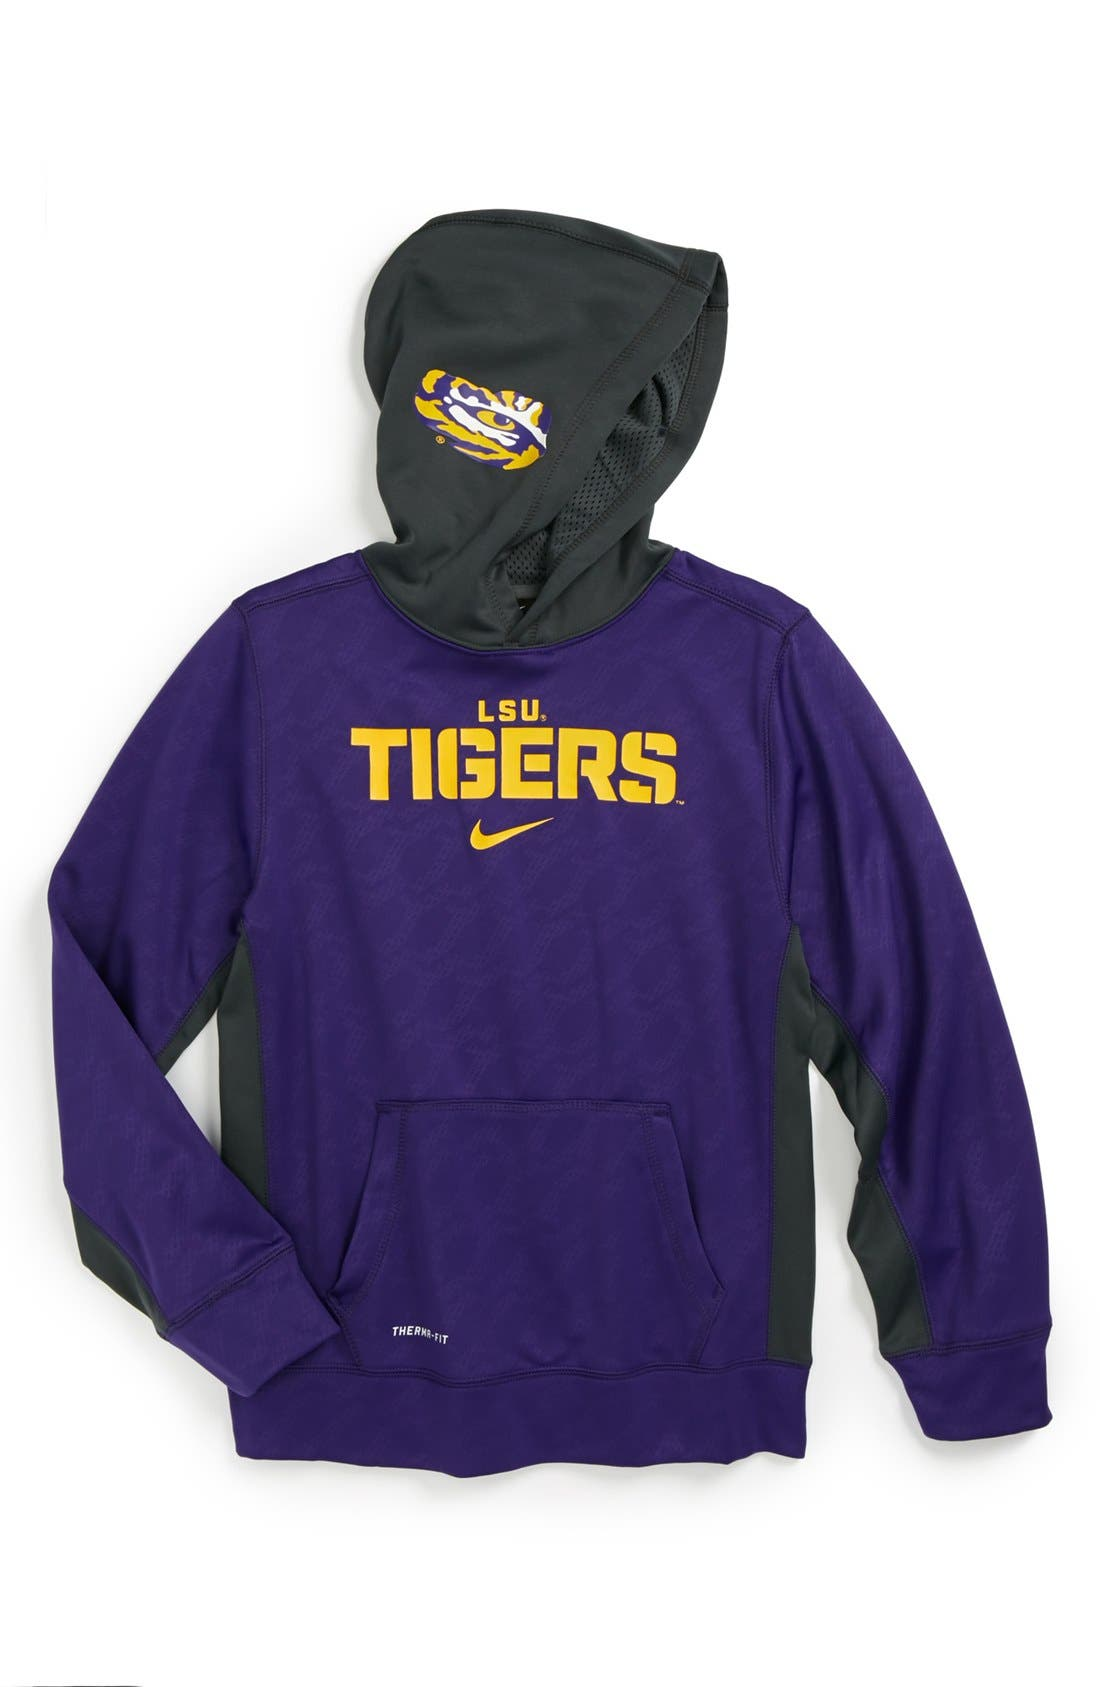 Alternate Image 1 Selected - Nike 'LSU Tigers' Therma-FIT Pullover Hoodie (Big Boys)